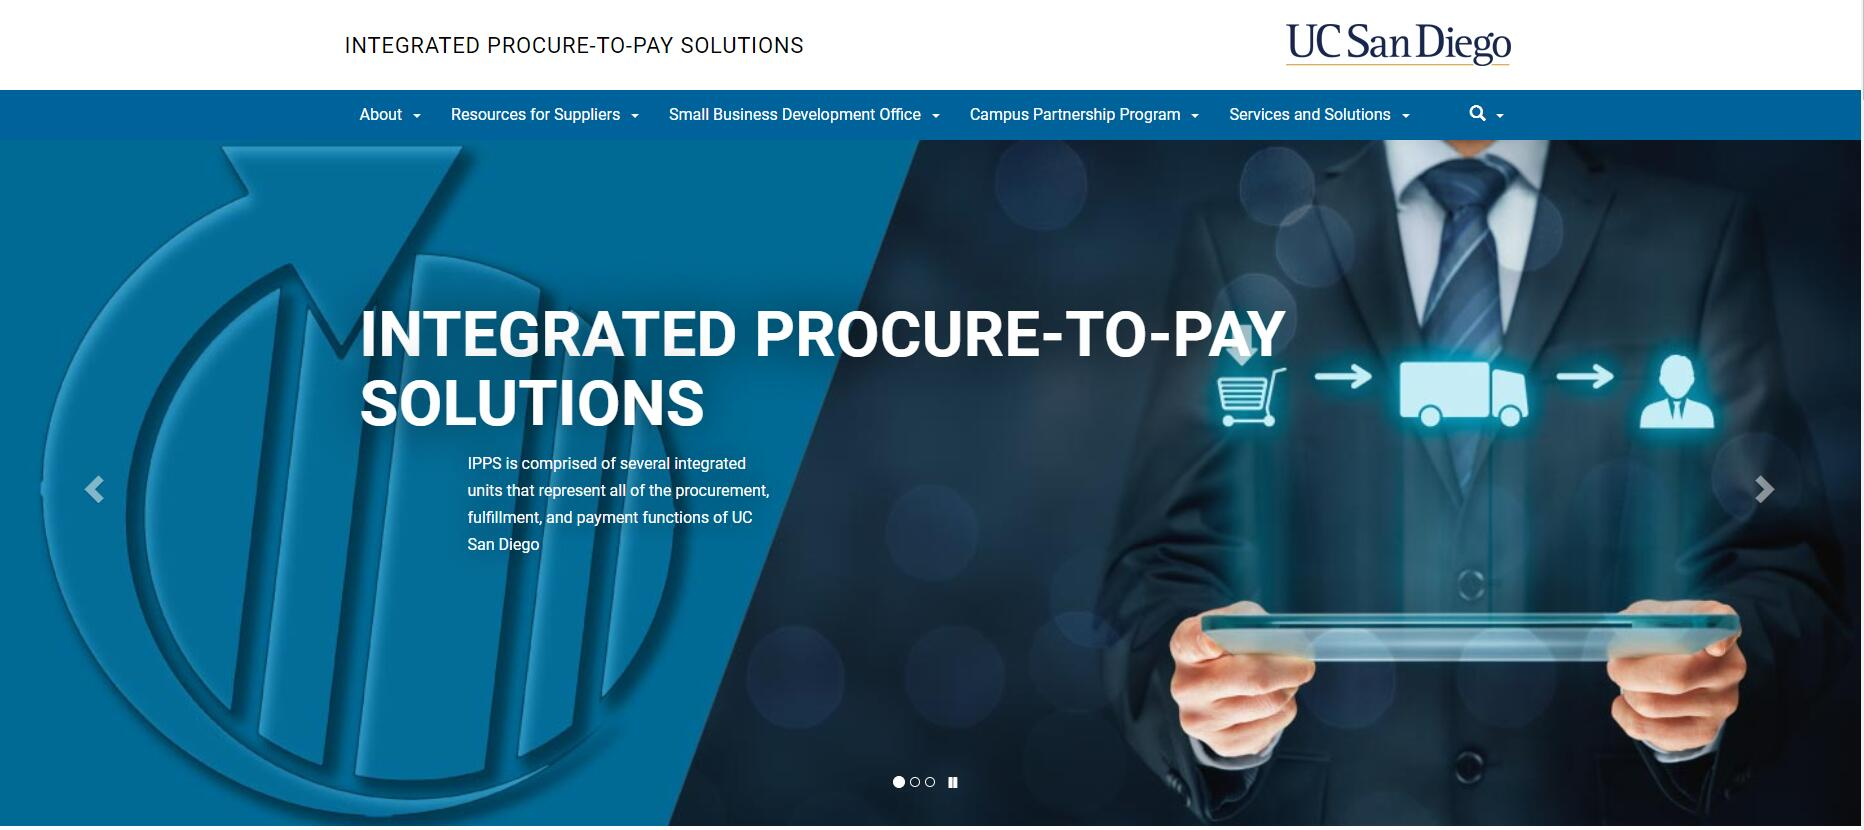 UCSD Integrated Procure-to-Pay Solutions